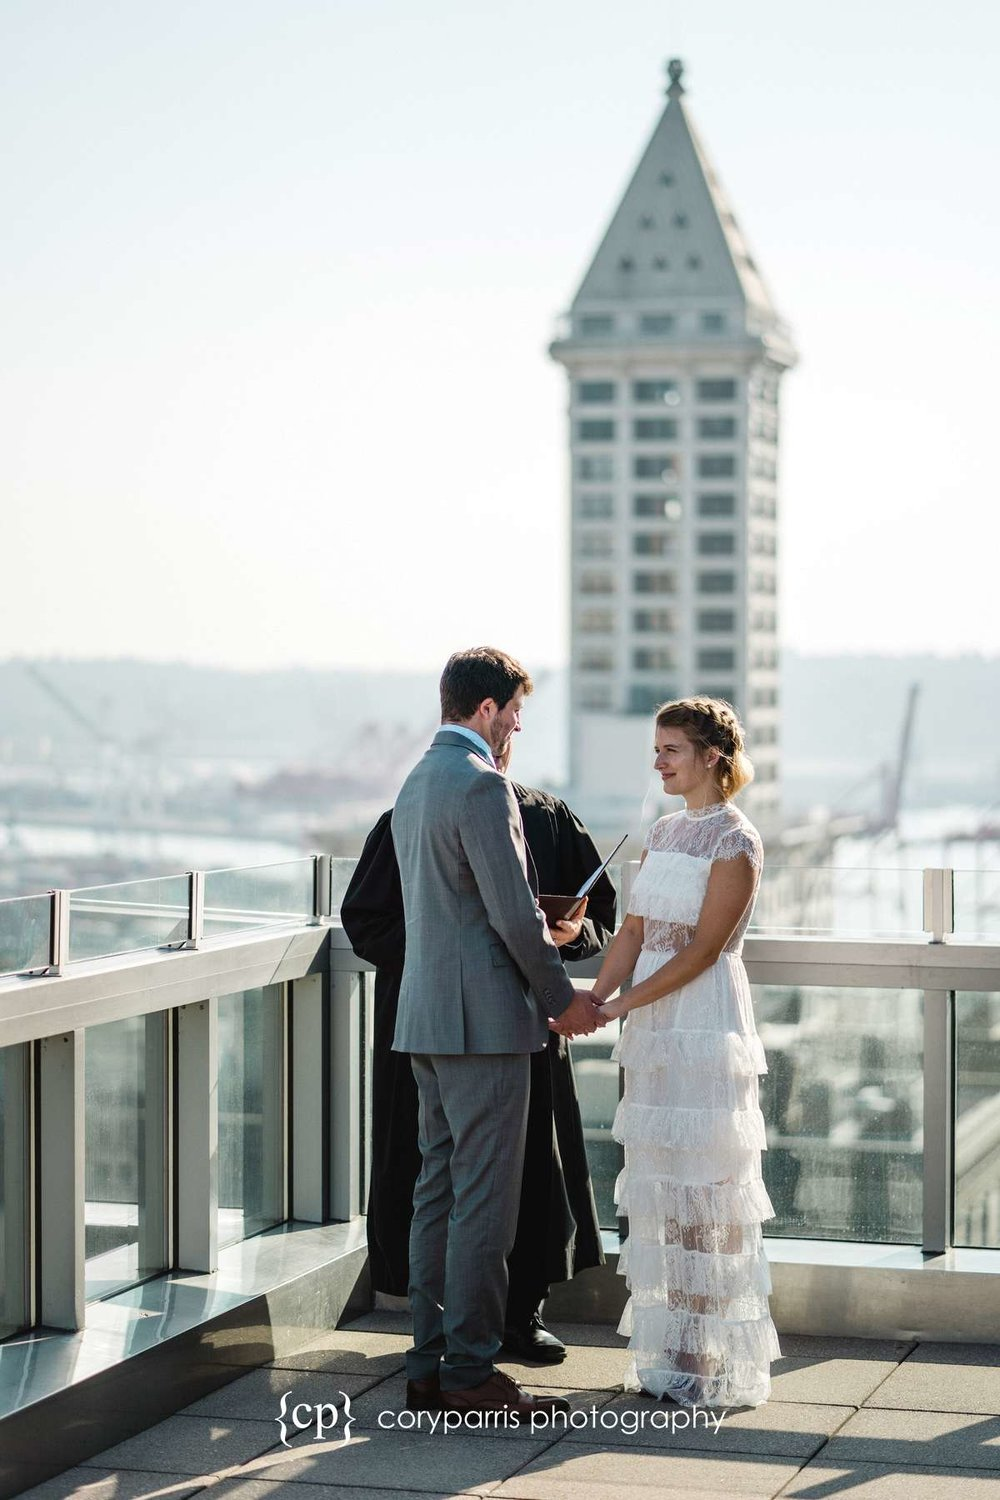 178-Seattle-Elopement-Courthouse.jpg